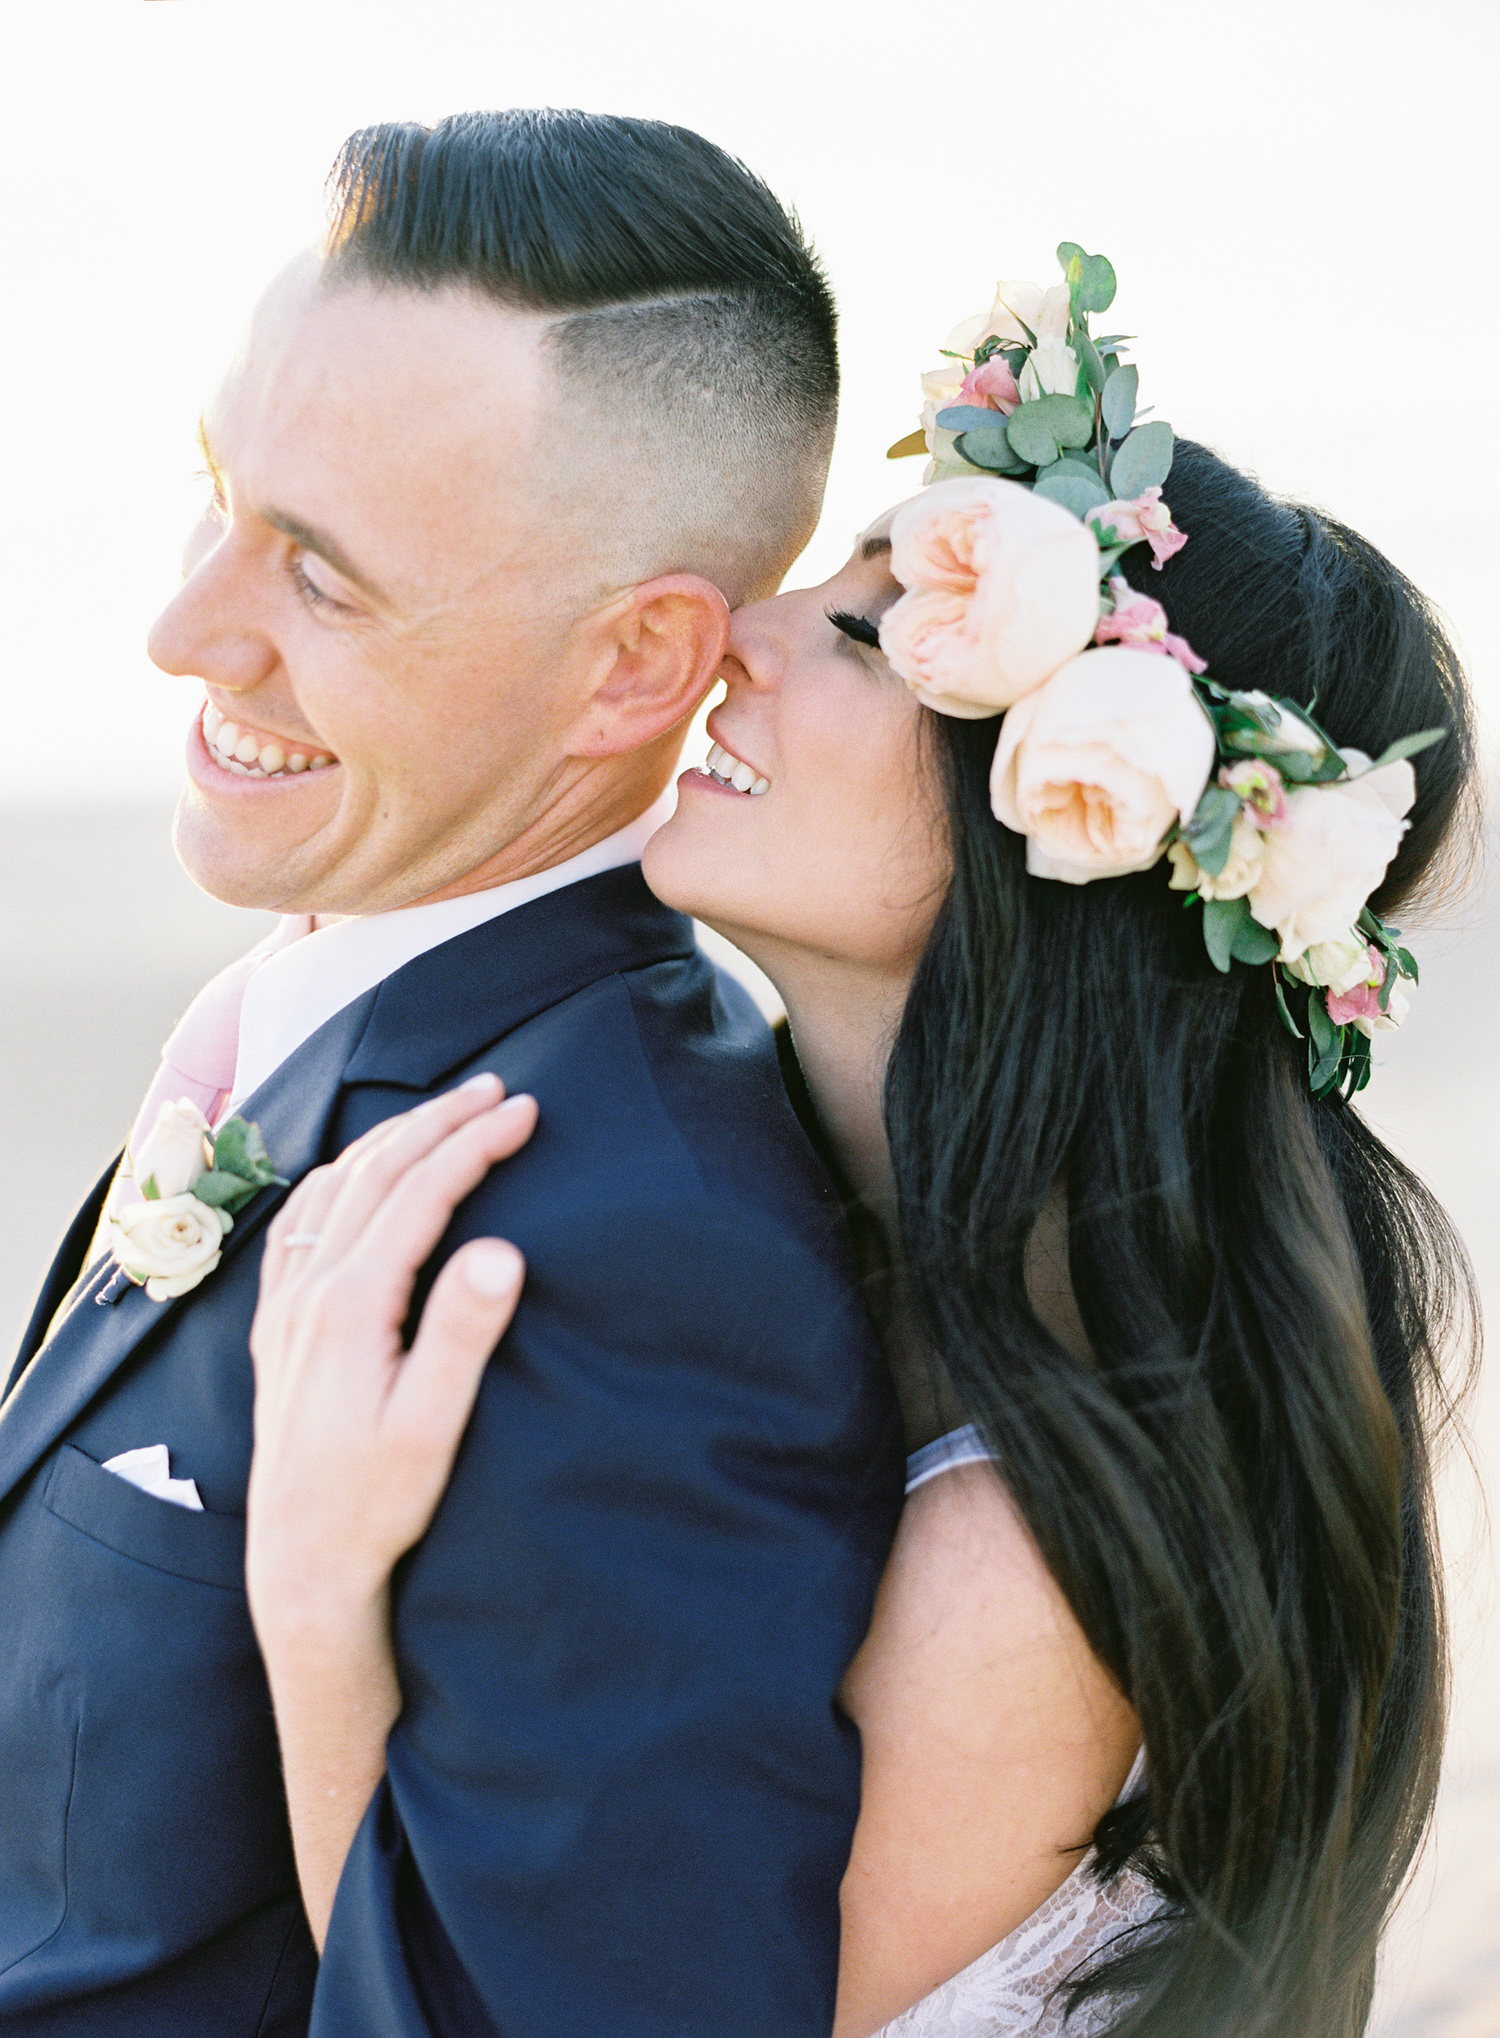 Orange County Wedding Photographer | Temecula Wedding Photographer | Joshua Tree Wedding Photographer | Palm Springs Wedding Photographer | San Diego Wedding Photographer -002.jpg